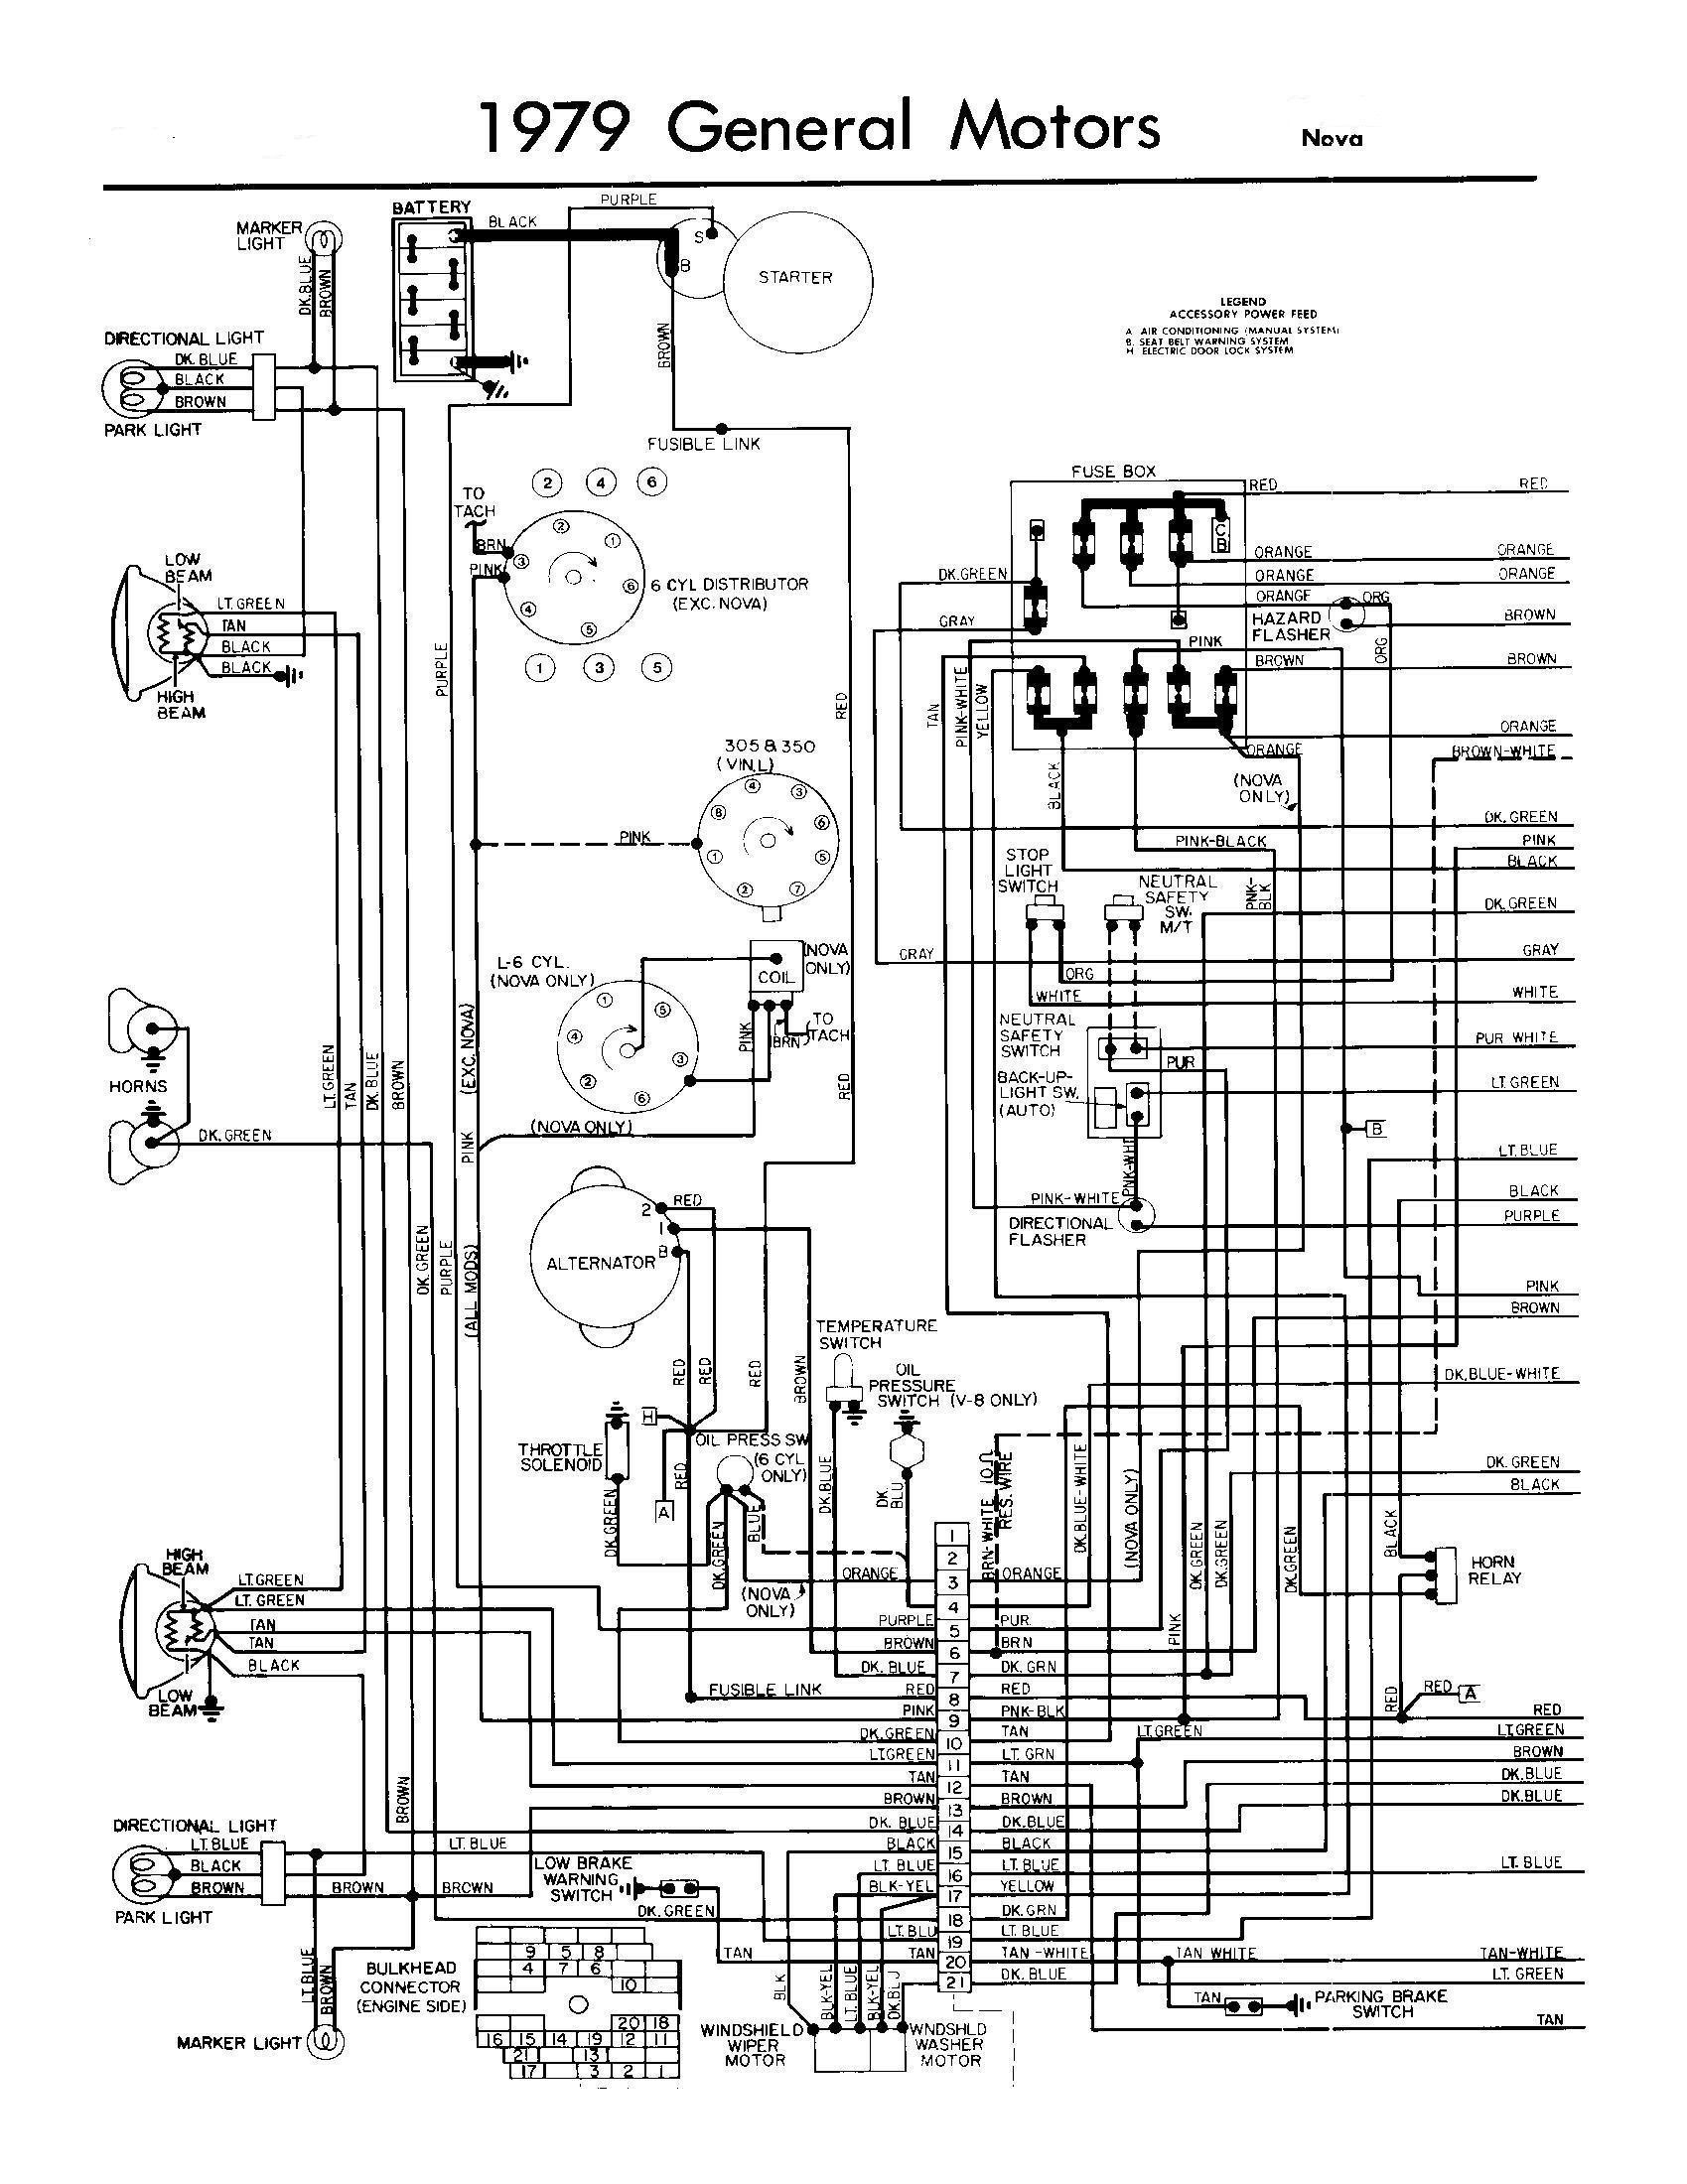 C70 Wiring Diagram - Wiring Diagram Data - 1990 Chevy 1500 Fuel Pump Wiring Diagram